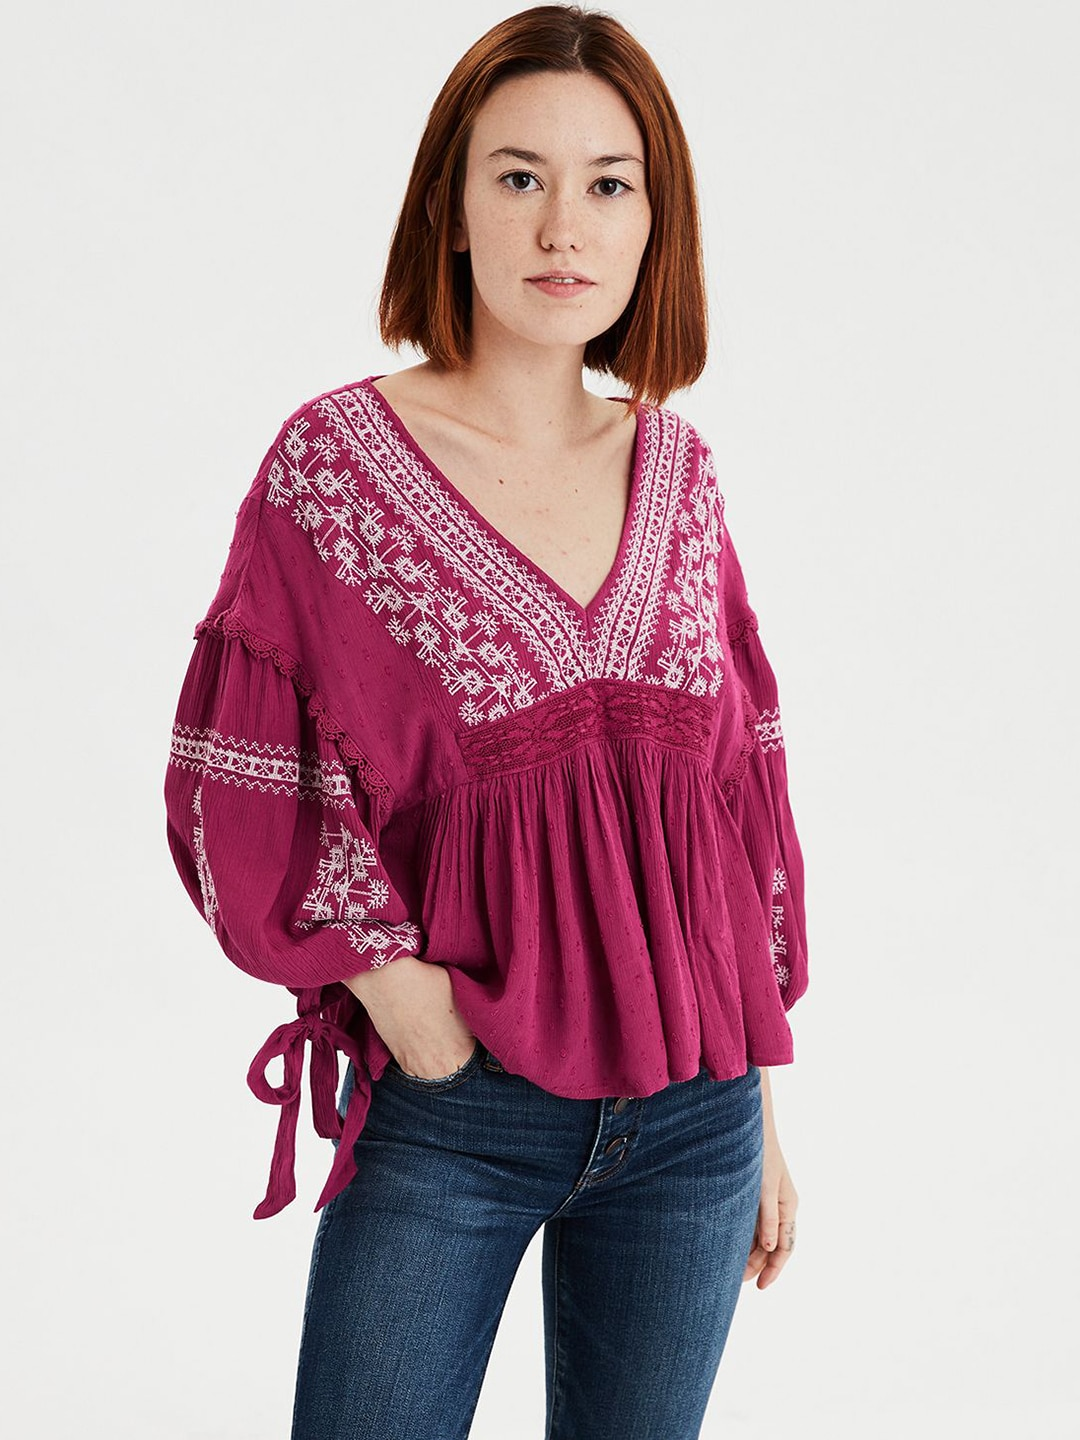 315a8f0a84205 Burgundy Tops - Buy Burgundy Tops online in India